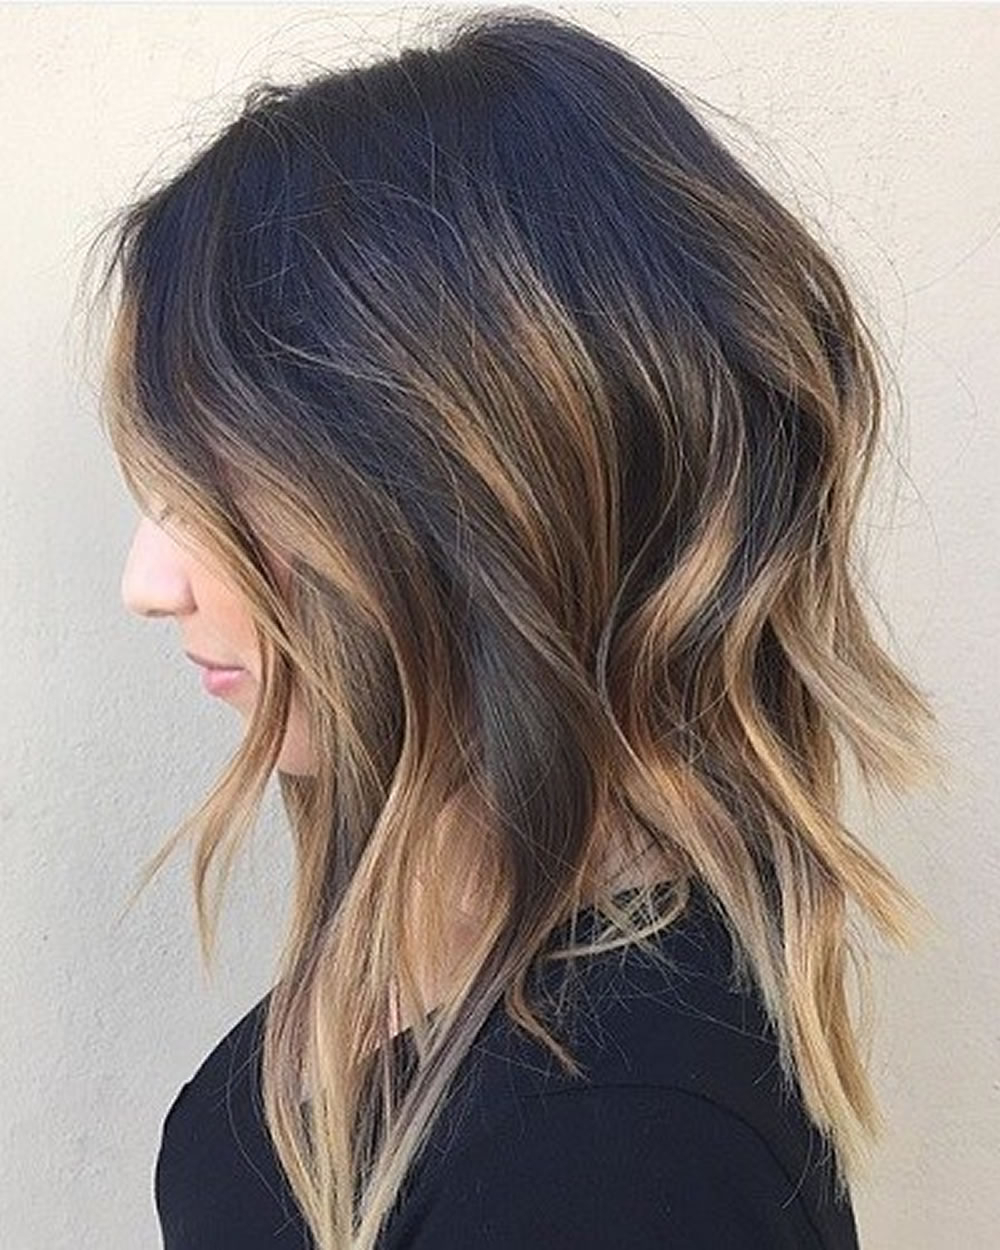 Asymmetrical Short Haircuts With Balayage Highlights 2018 – 2019 Throughout Short Hairstyles And Highlights (Gallery 8 of 25)